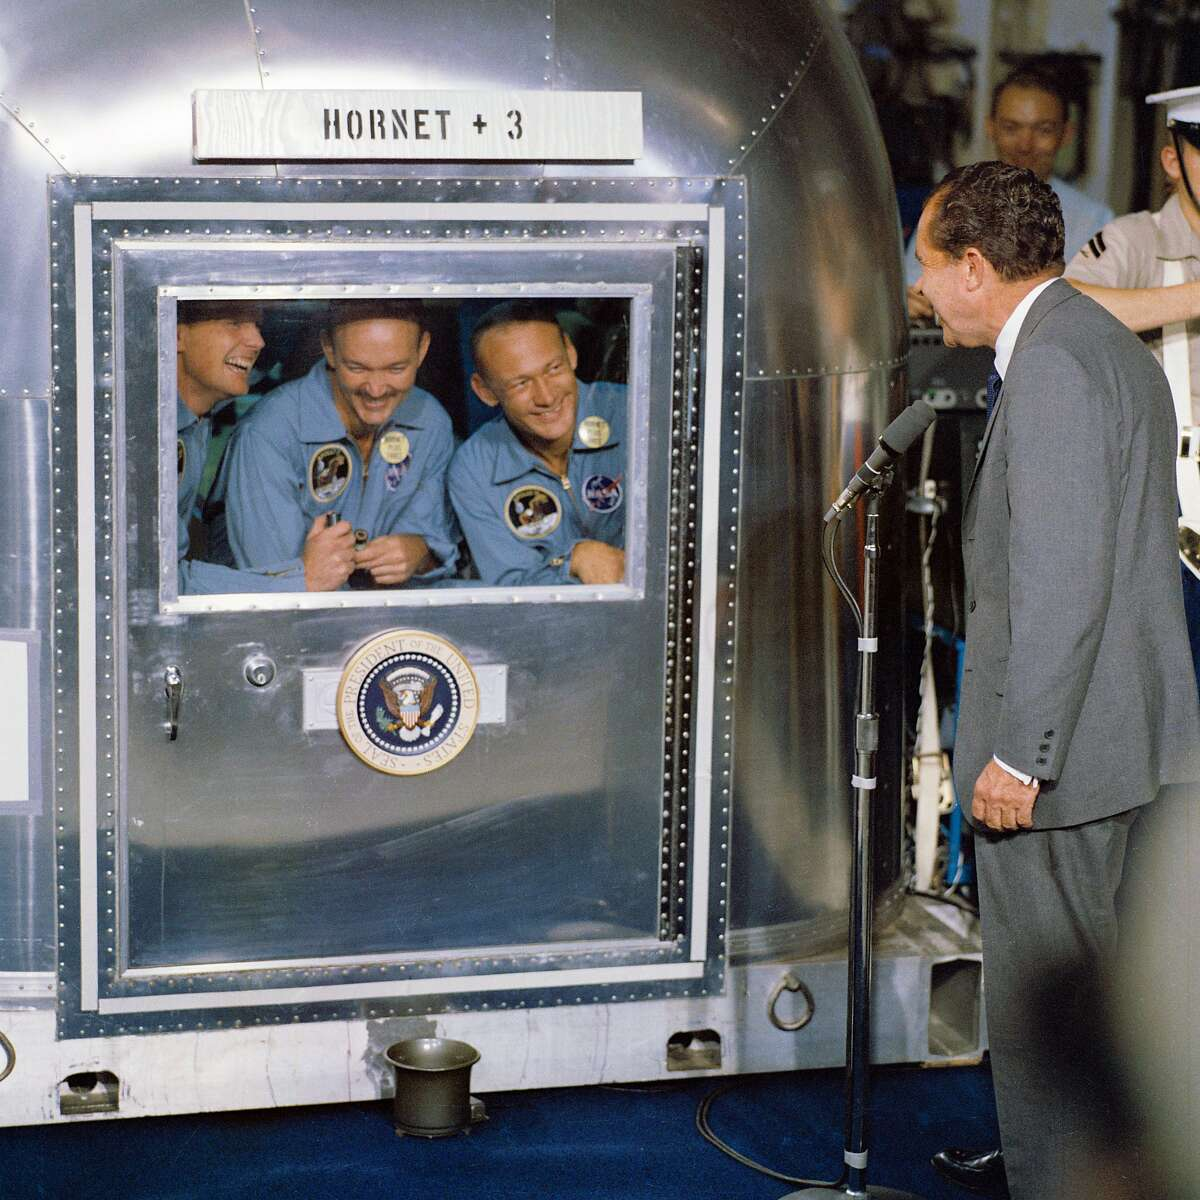 """(24 July 1969) --- United States President Richard M. Nixon was in the central Pacific recovery area to welcome the Apollo 11 astronauts aboard the USS Hornet, prime recovery ship for the historic Apollo 11 lunar landing mission. Already confined to the Mobile Quarantine Facility (MQF) are (left to right) Neil A. Armstrong, commander; Michael Collins, command module pilot; and Edwin E. Aldrin Jr., lunar module pilot. Apollo 11 splashed down at 11:49 a.m. (CDT), July 24, 1969, about 812 nautical miles southwest of Hawaii and only 12 nautical miles from the USS Hornet. The three crewmen will remain in the MQF until they arrive at the Manned Spacecraft Center's (MSC) Lunar Receiving Laboratory (LRL). While astronauts Armstrong and Aldrin descended in the Lunar Module (LM) """"Eagle"""" to explore the Sea of Tranquility region of the moon, astronaut Collins remained with the Command and Service Modules (CSM) """"Columbia"""" in lunar orbit. Photo credit: NASA"""